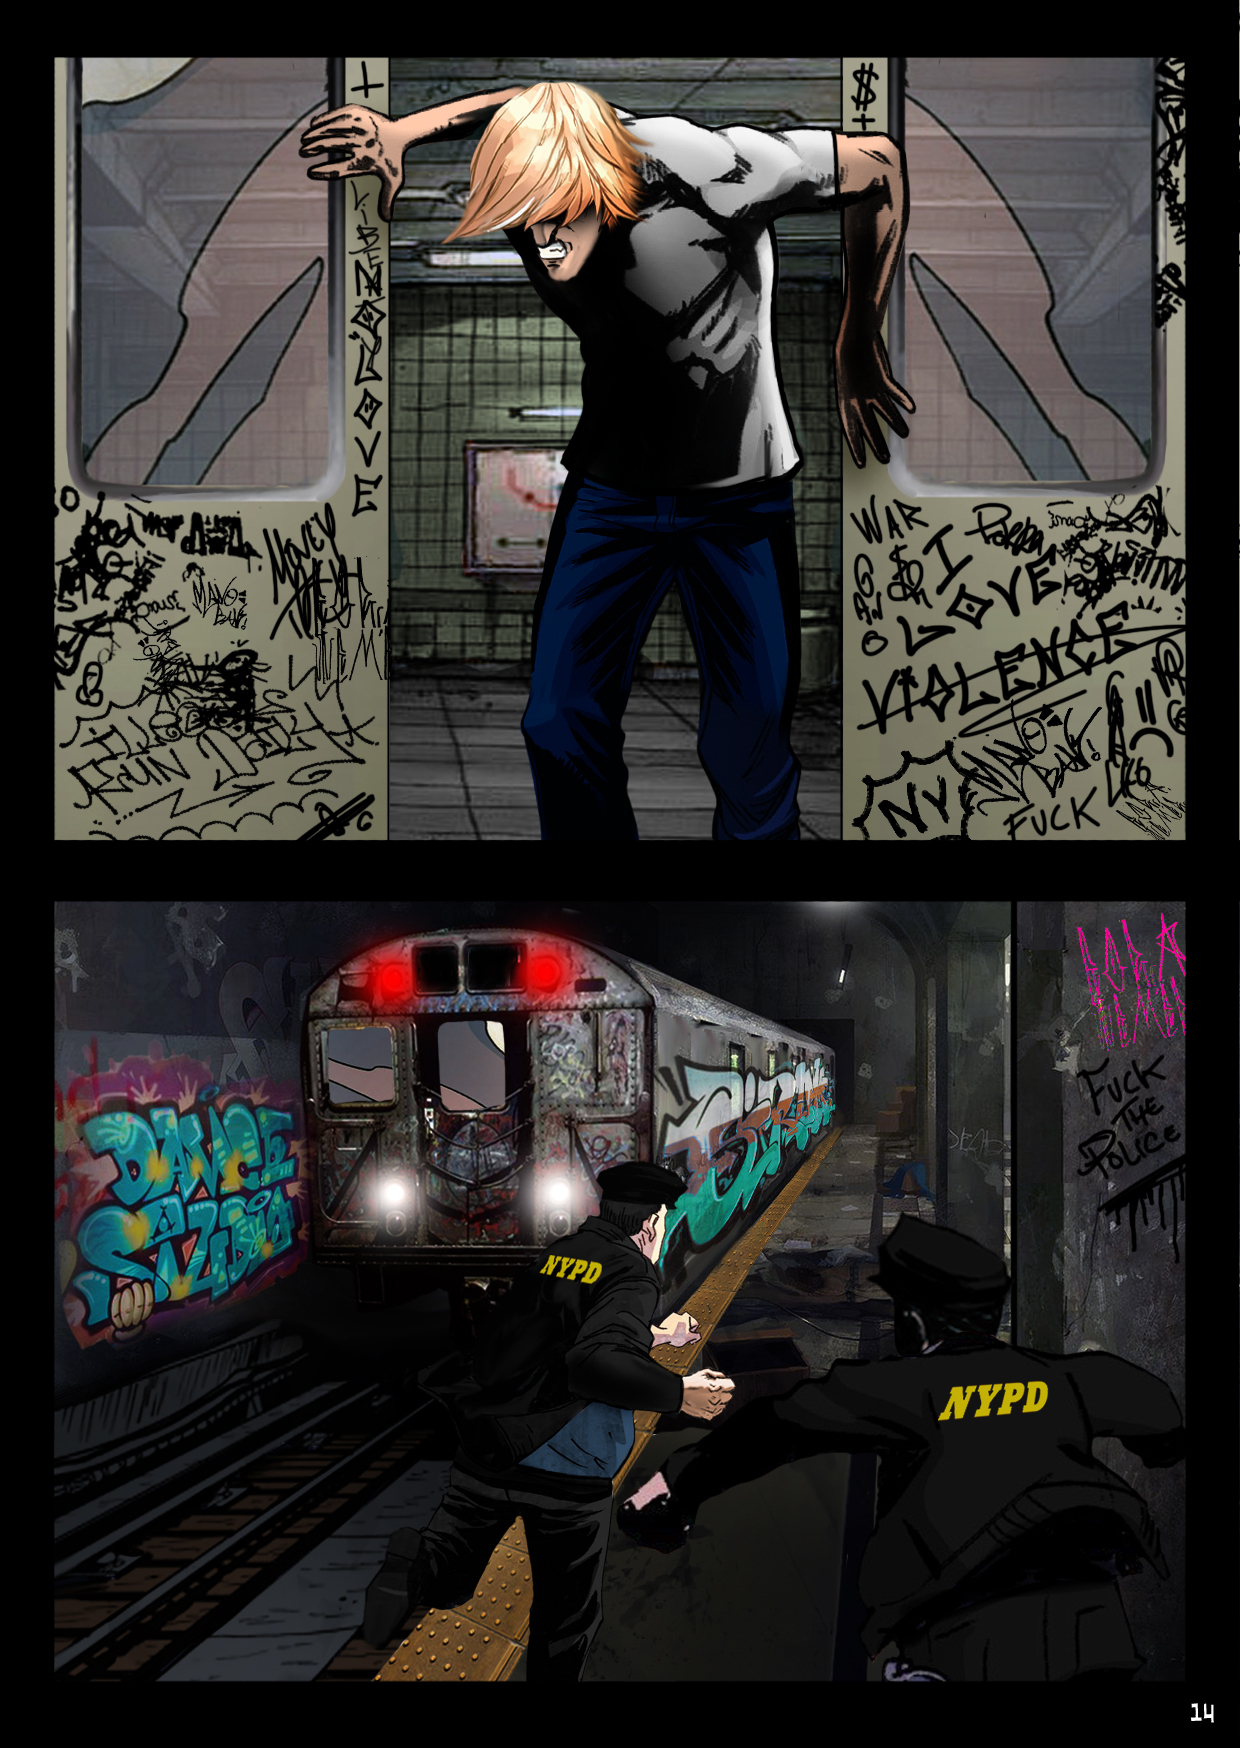 Bobby just makes it onto a departing train between closing doors, leaving purusing cops behind.